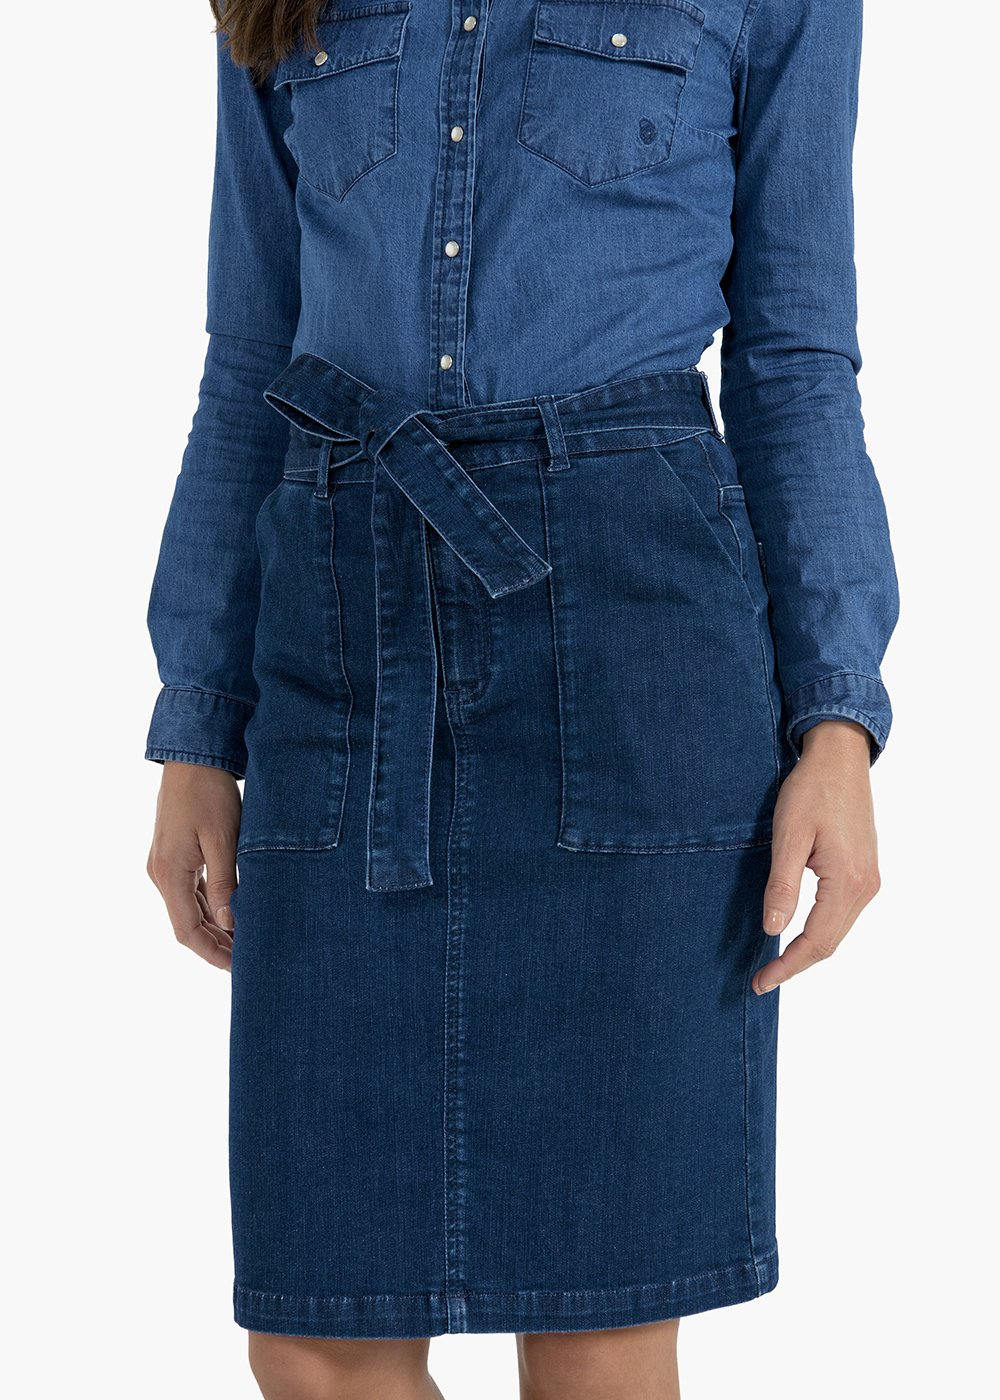 Glen denim skirt with pockets and belt - Dark Denim - Woman